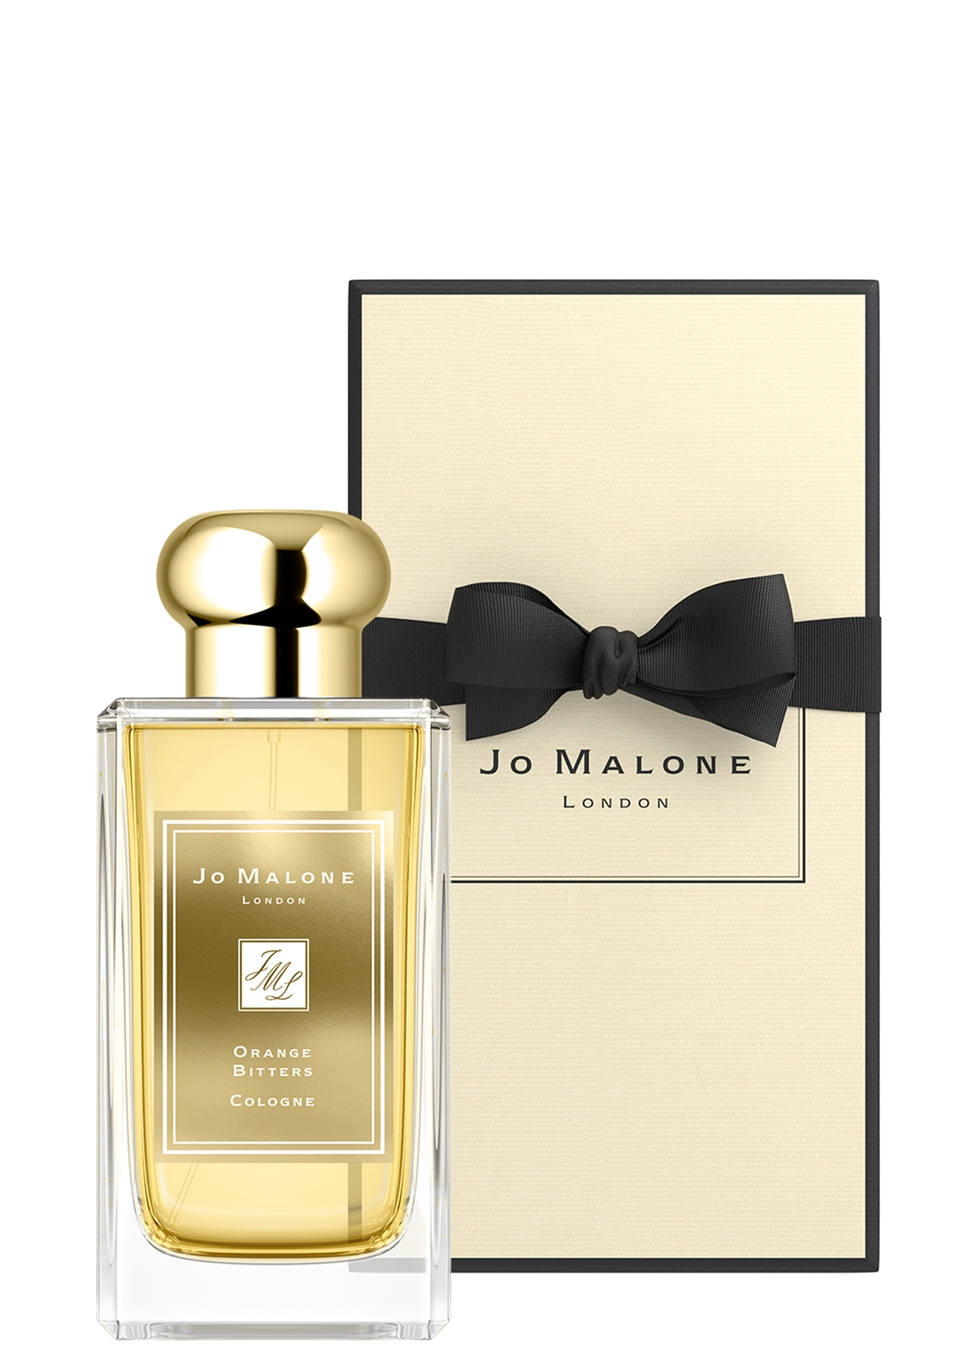 Orange Bitters Cologne 100ml - JO MALONE LONDON